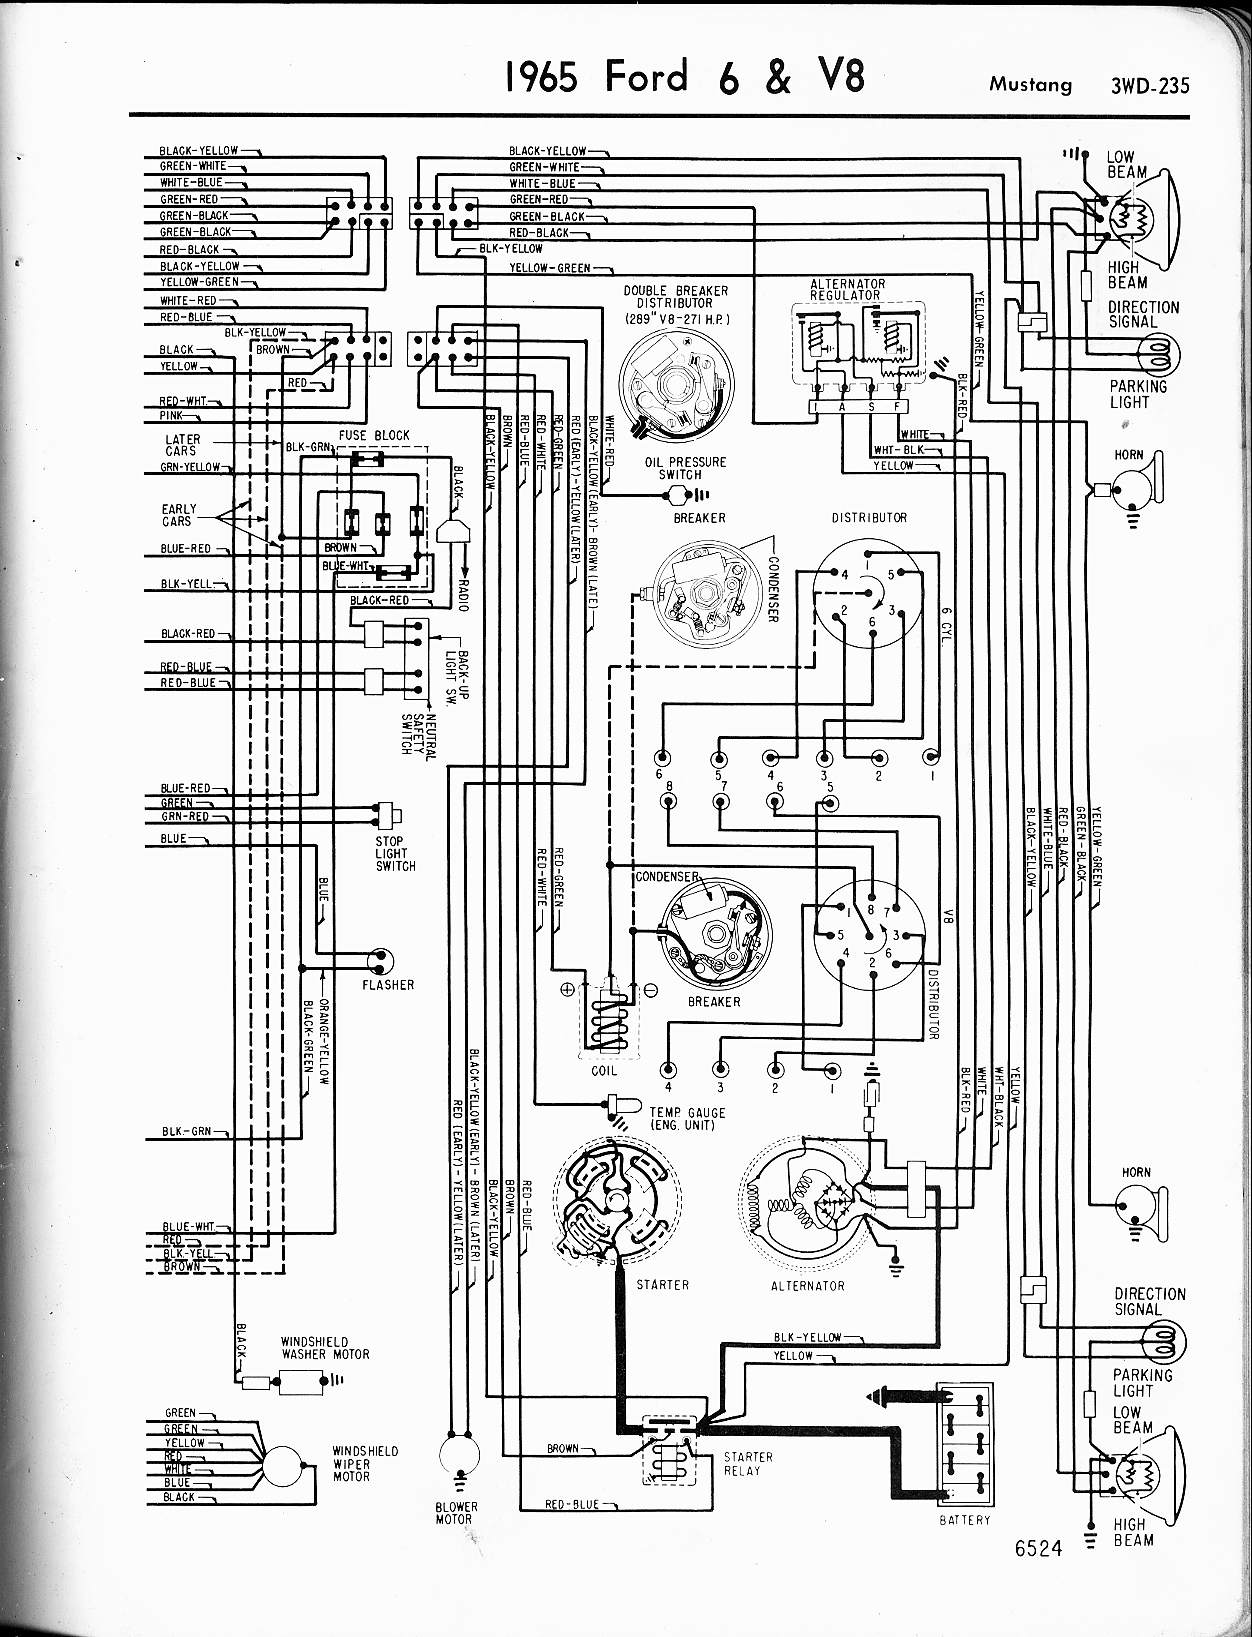 57 65 Ford Wiring Diagrams Kazuma 90cc Diagram 1965 6 V8 Mustang Right